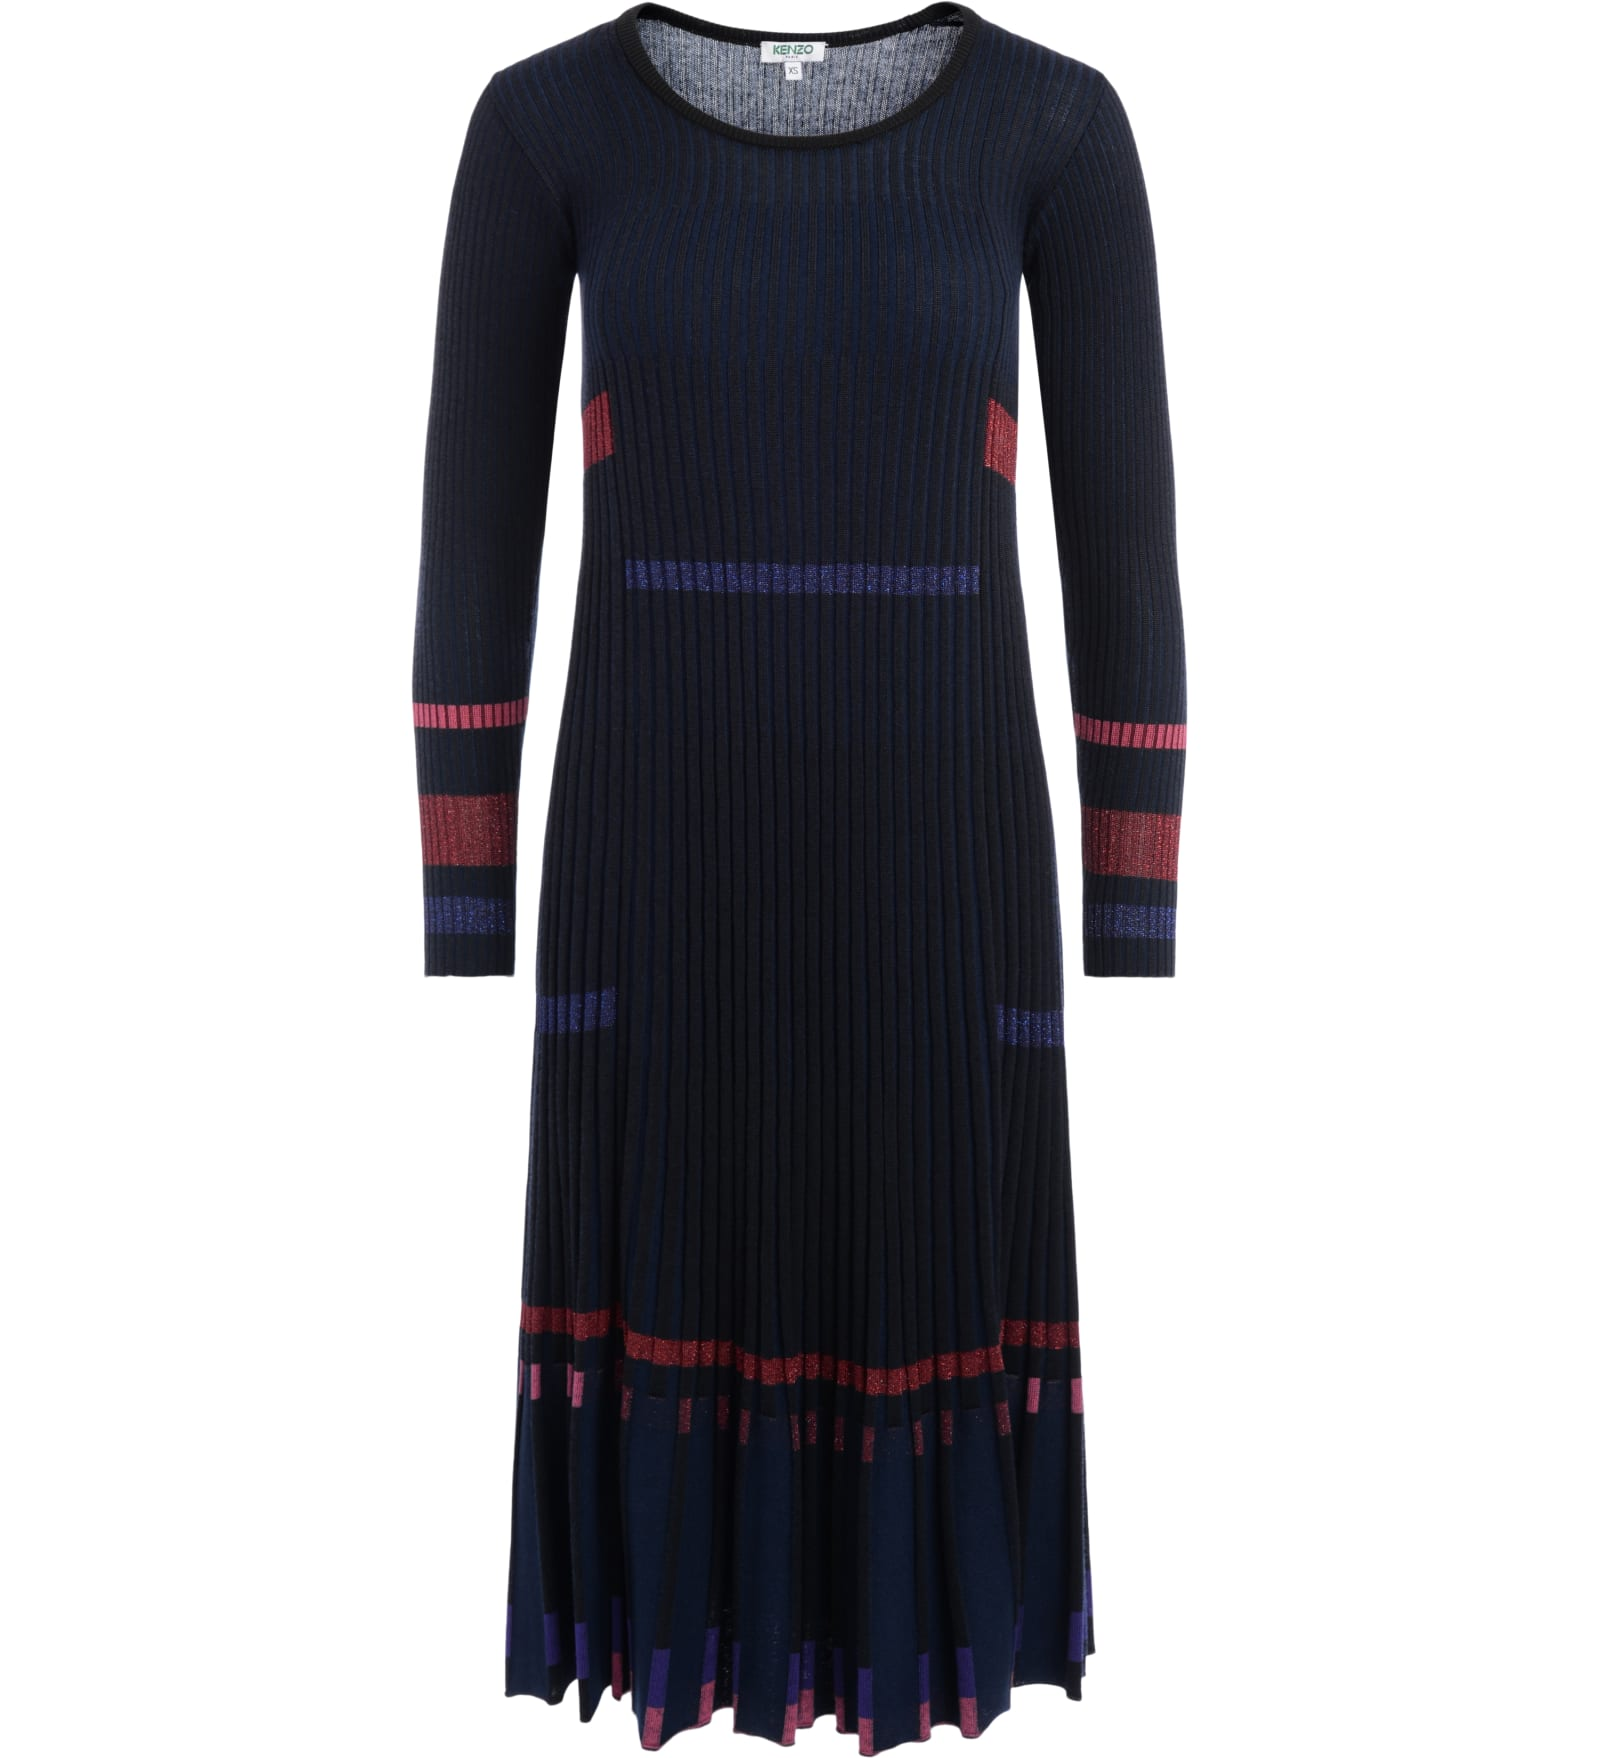 Buy Kenzo Crew Neck Blue And Black Ribbed Dress With Lurex Inserts online, shop Kenzo with free shipping